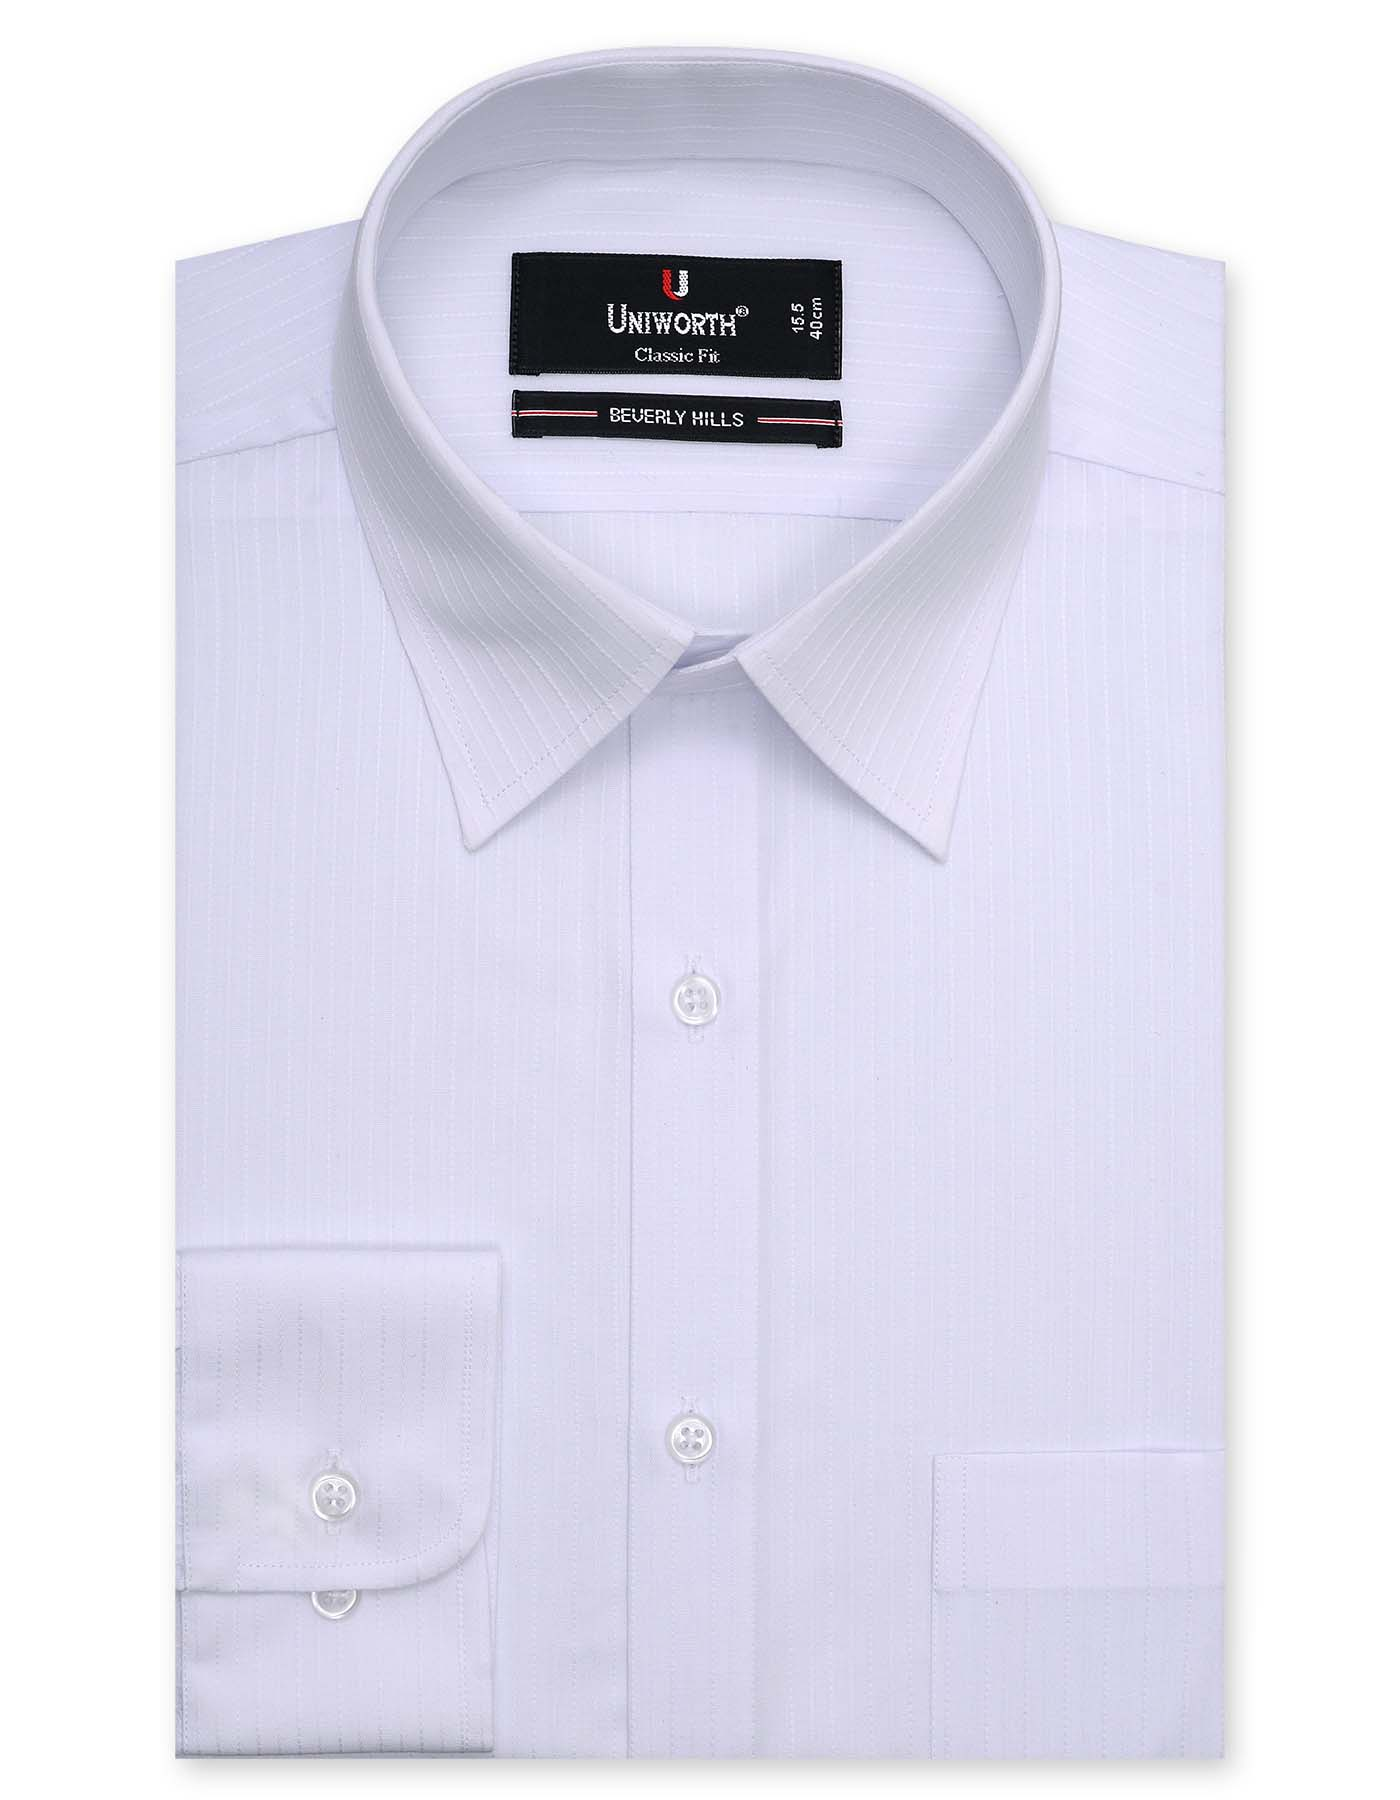 White Self Striped Classic Fit Dress Shirt